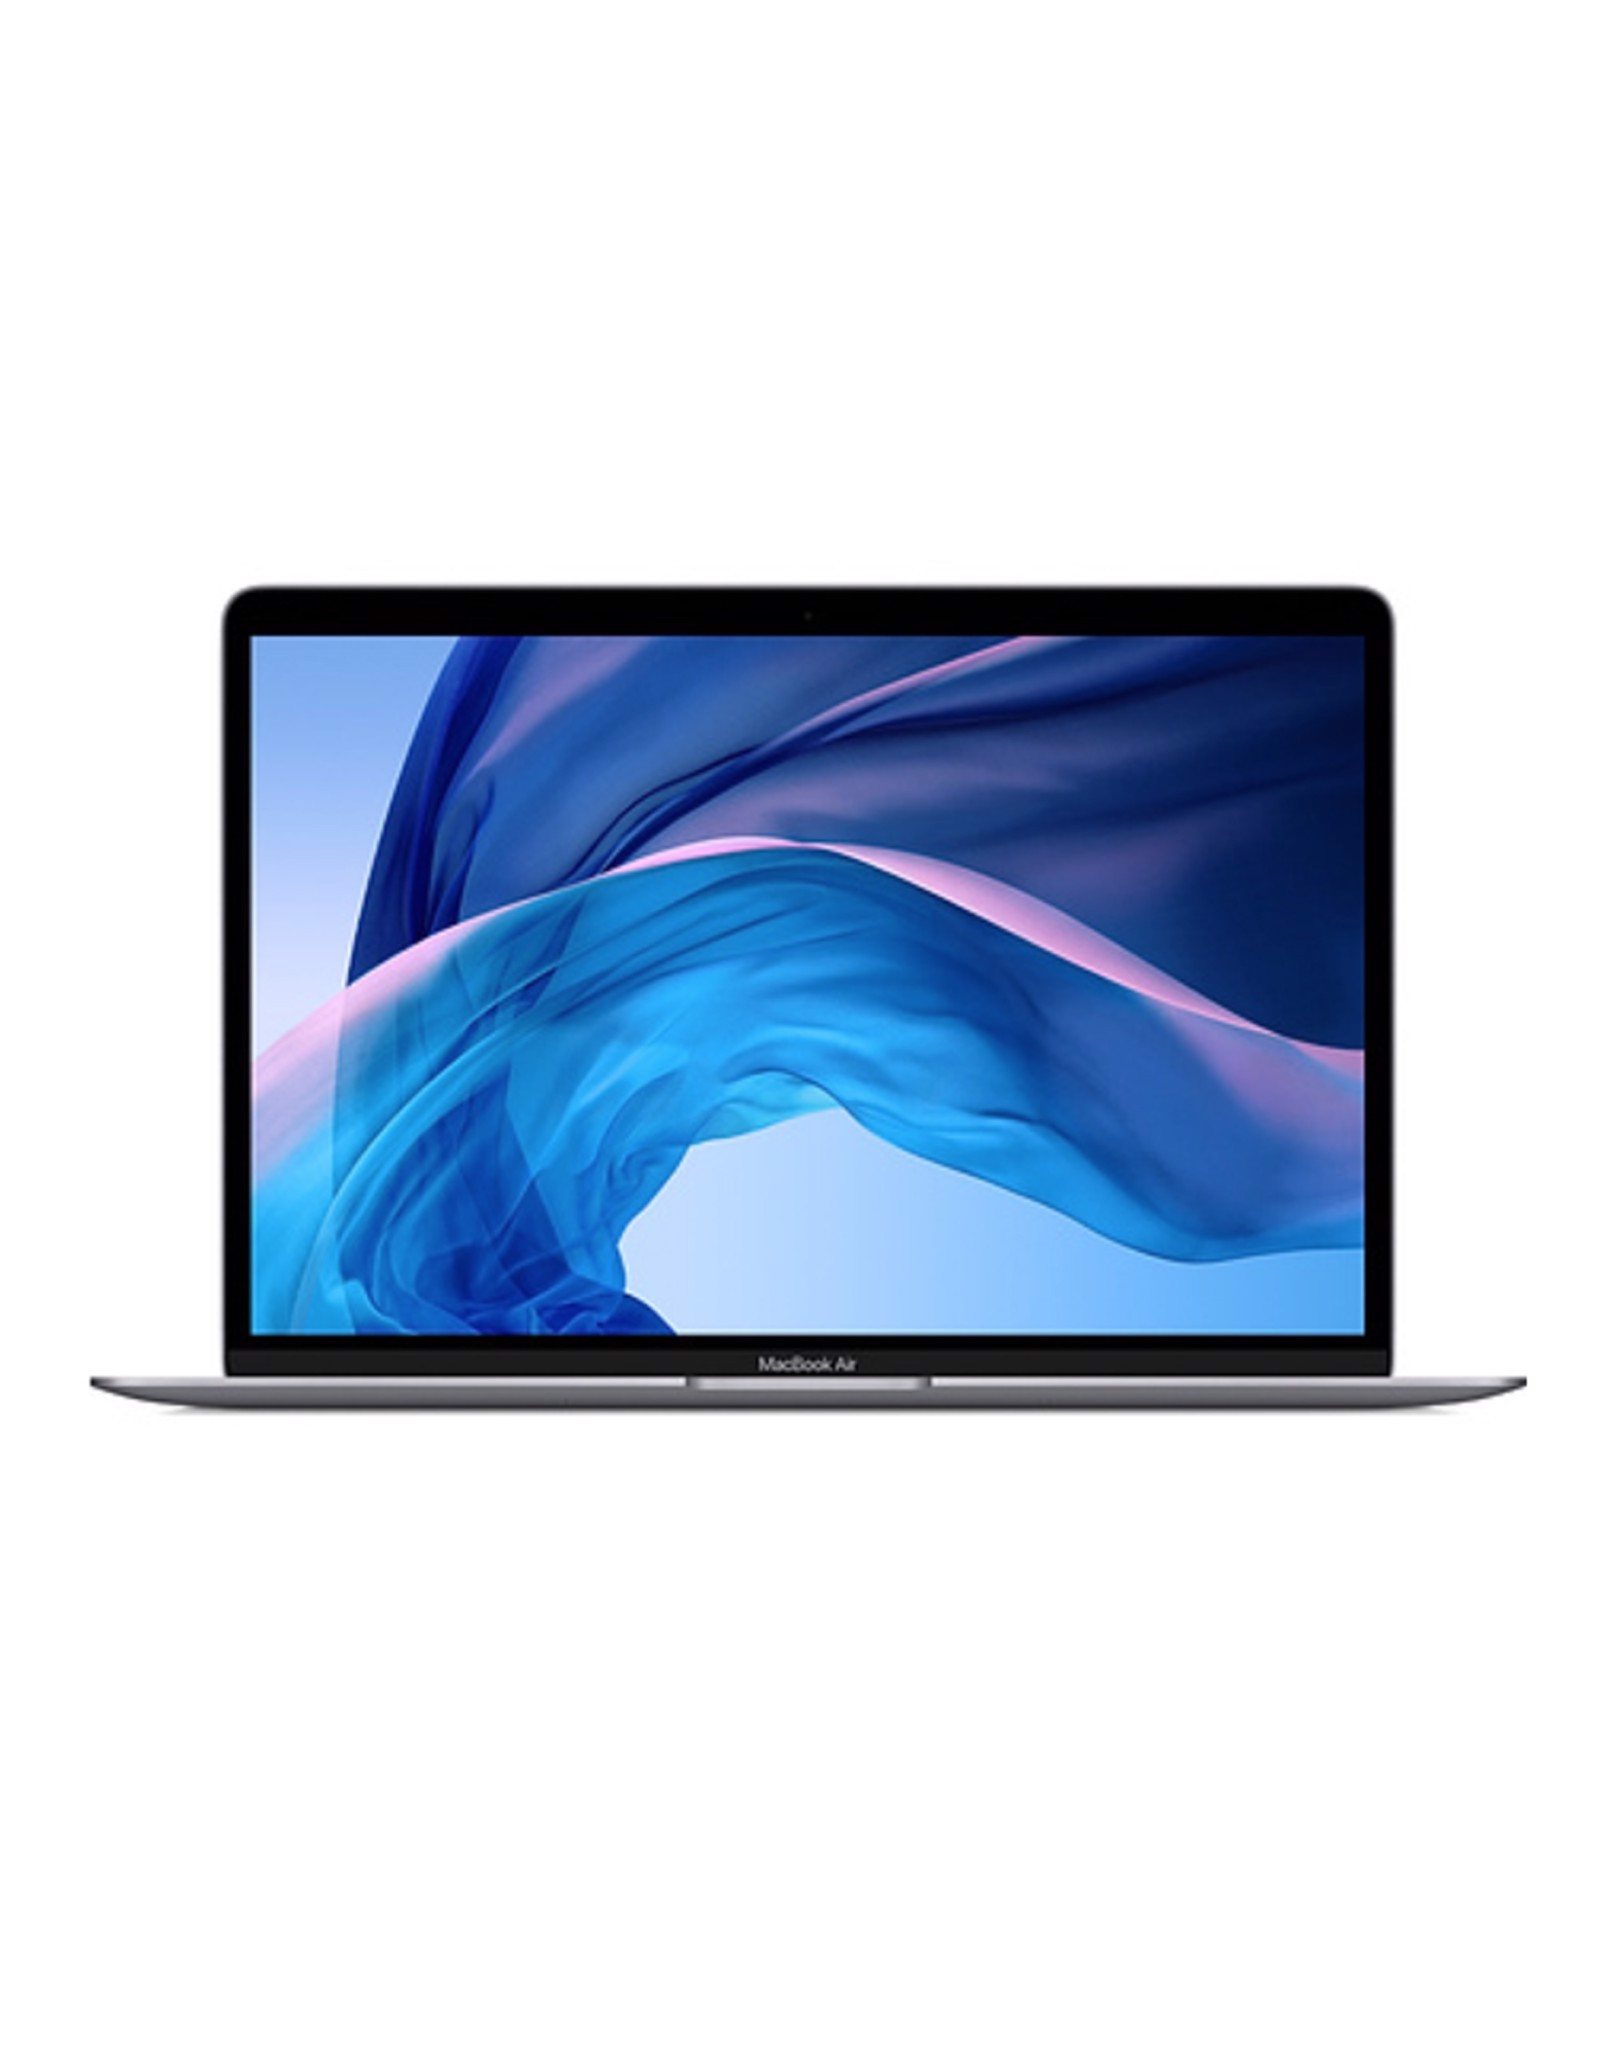 Macbook Air 2019 13 inch - SSD 128GB